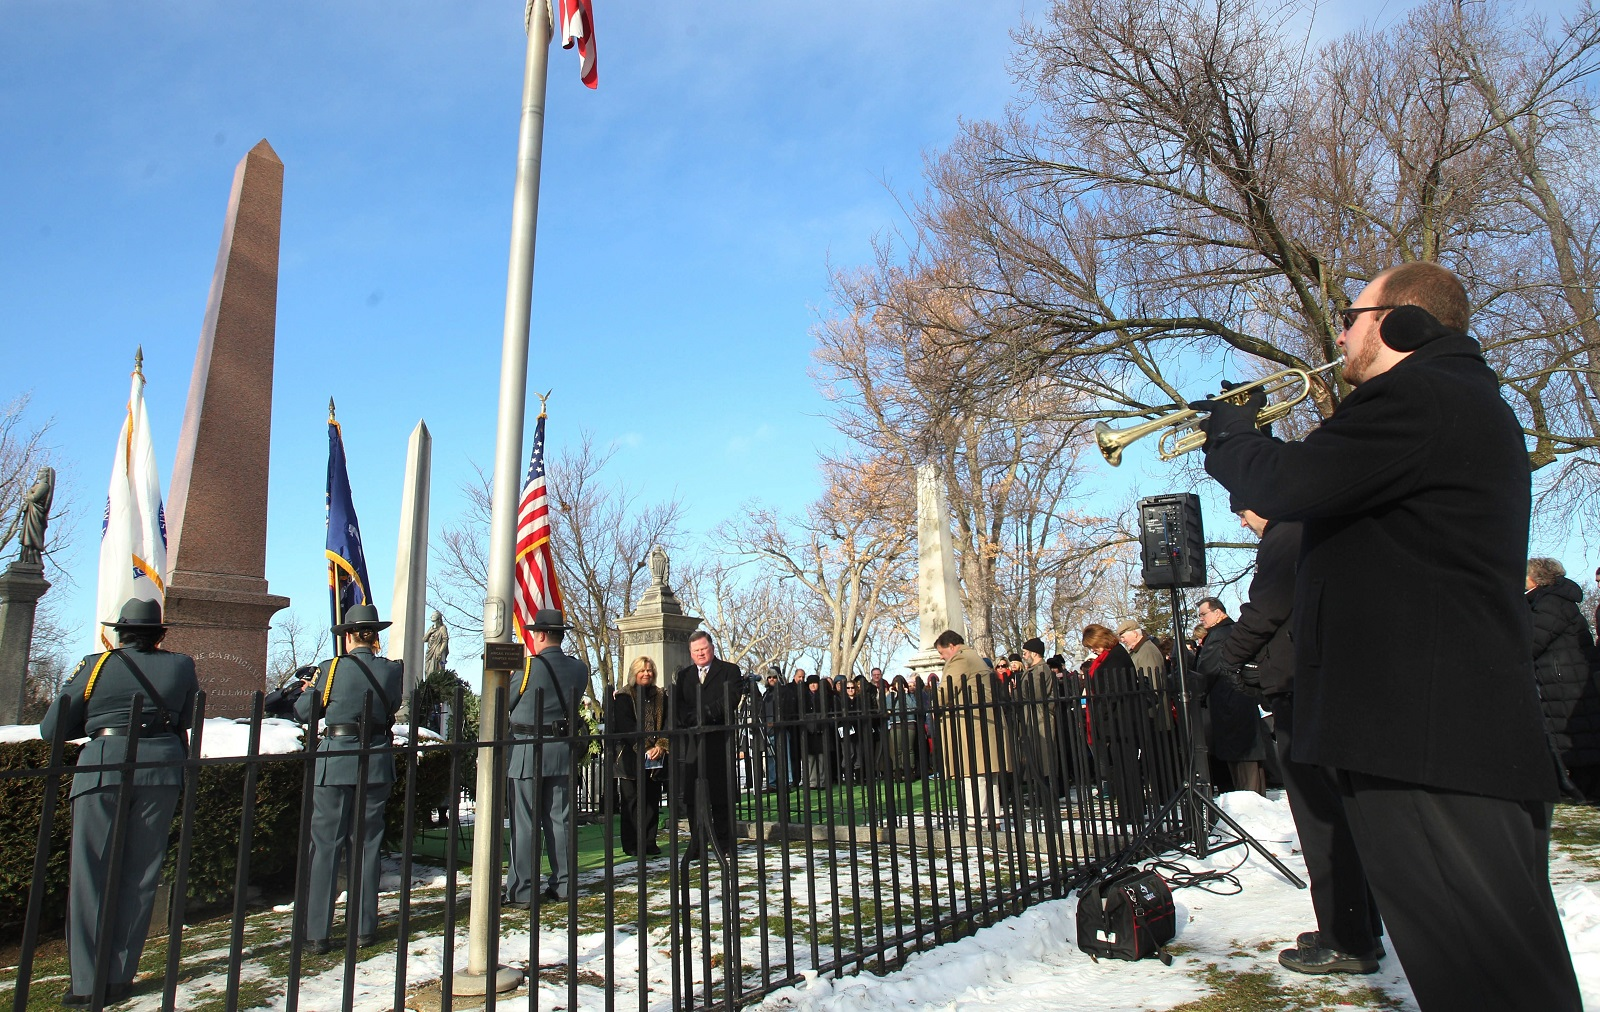 Here University at Buffalo graduate student West Richter Jr. concluded the 48th observance of Millard Fillmore's birthday with Taps, in 2013. (Sharon Cantillon/Buffalo News file photo)